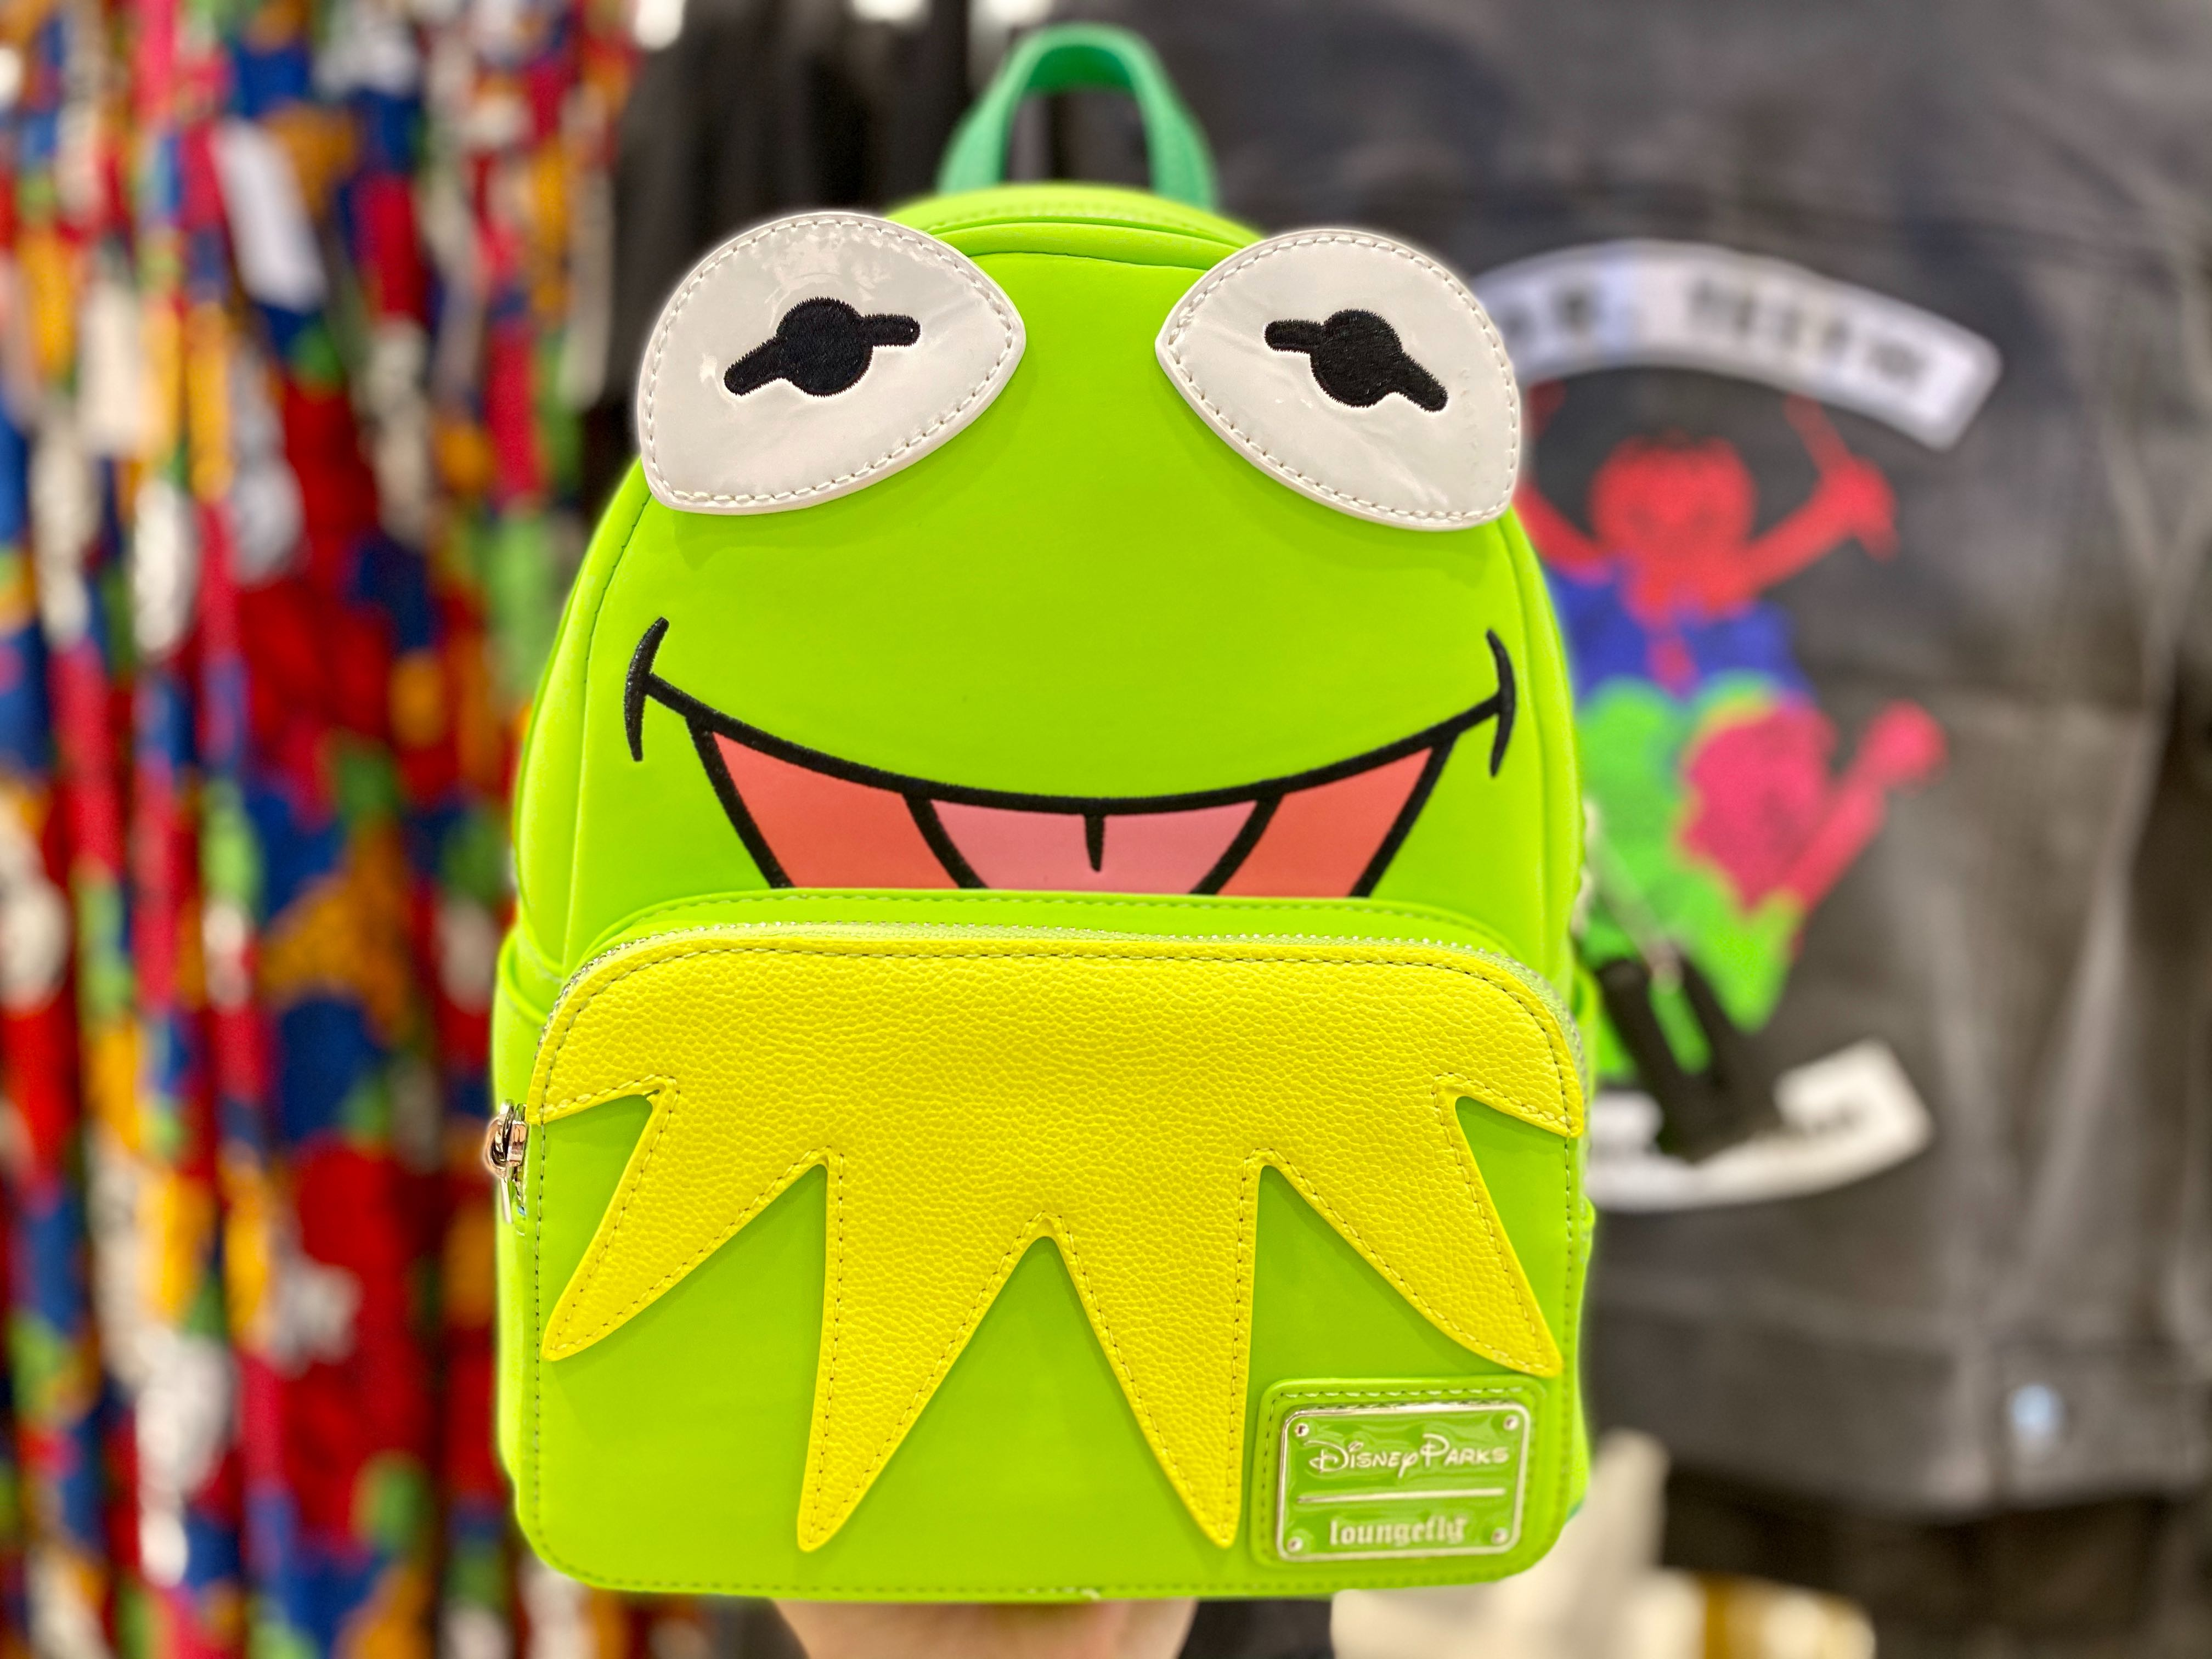 kermit loungefly backpack